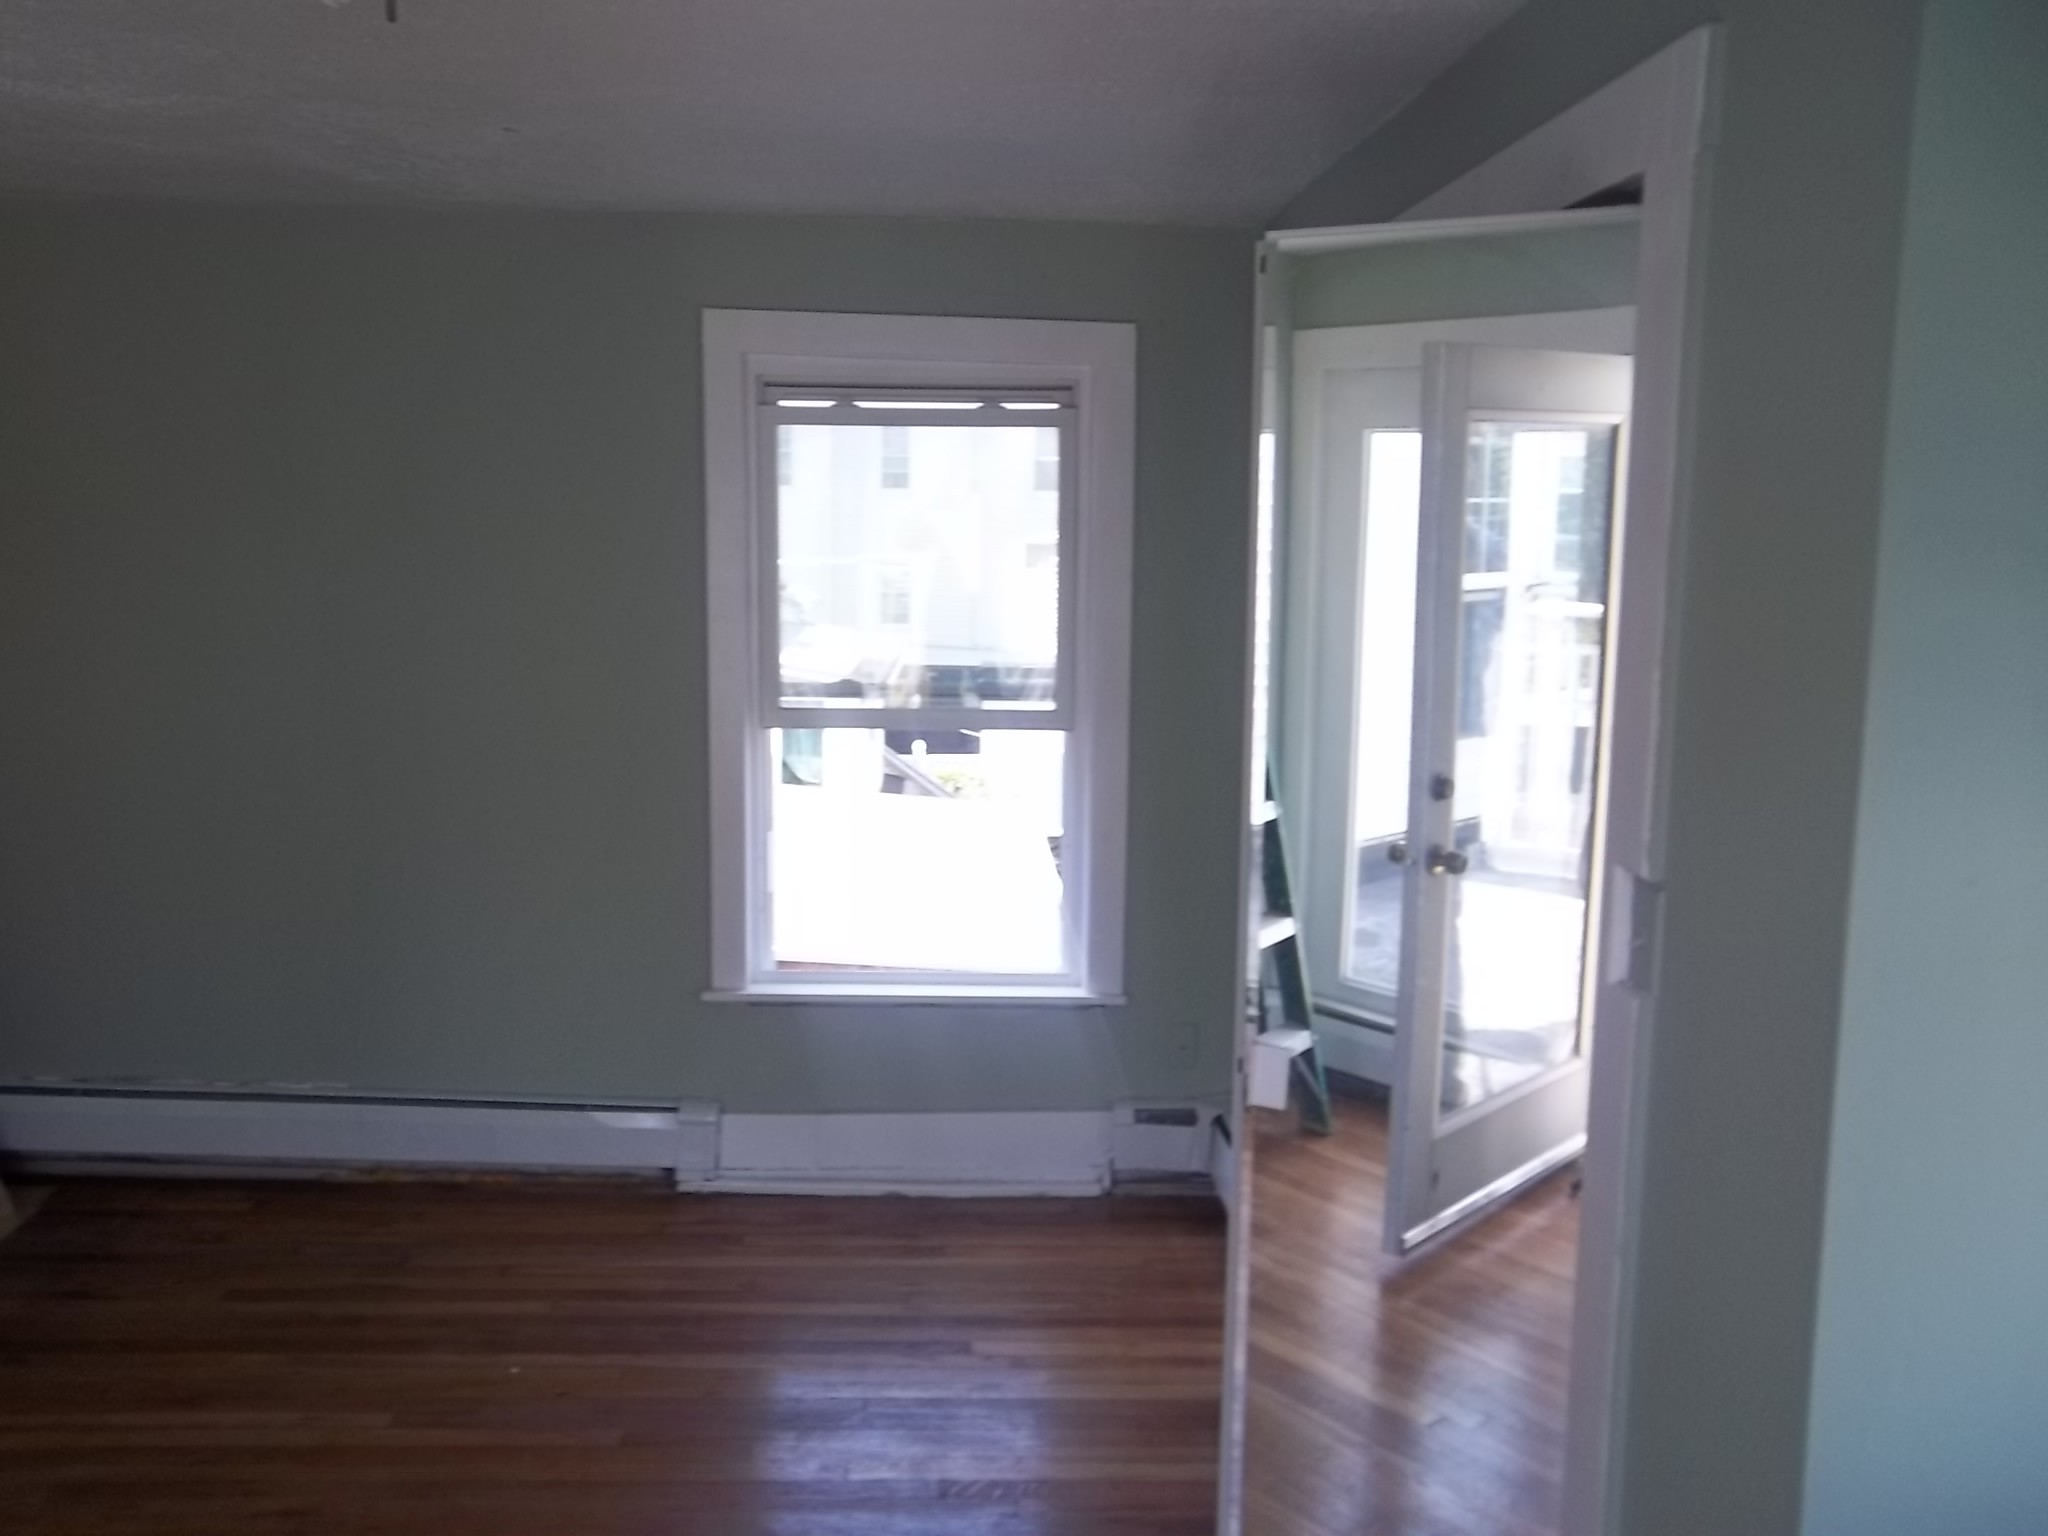 Edgar ave somerville ma 02145 2 bedroom apartment for rent for 1 800 month zumper for 2 bedroom apartments somerville ma